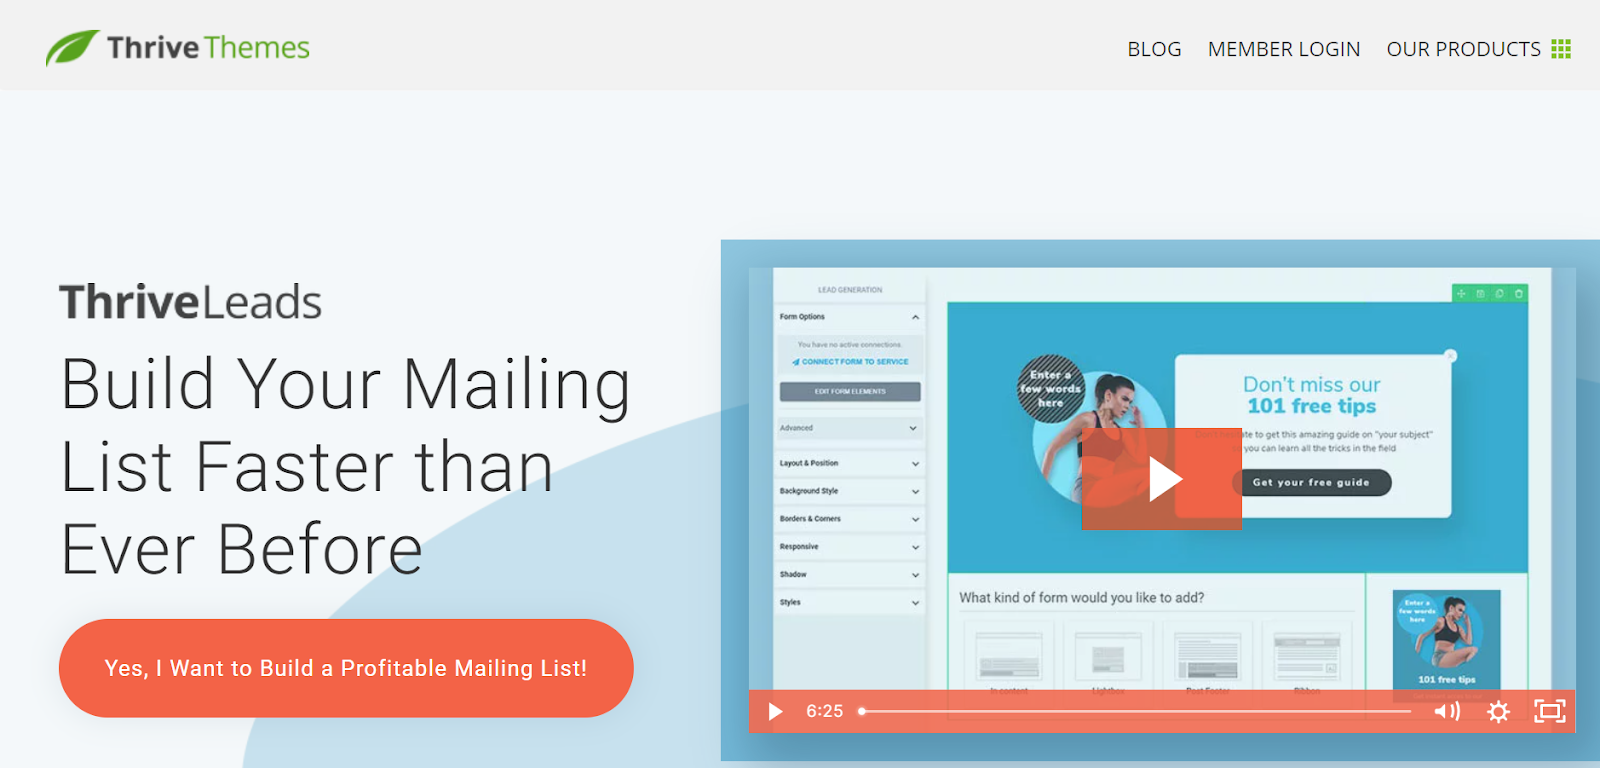 lead generation tools for building mailing lists